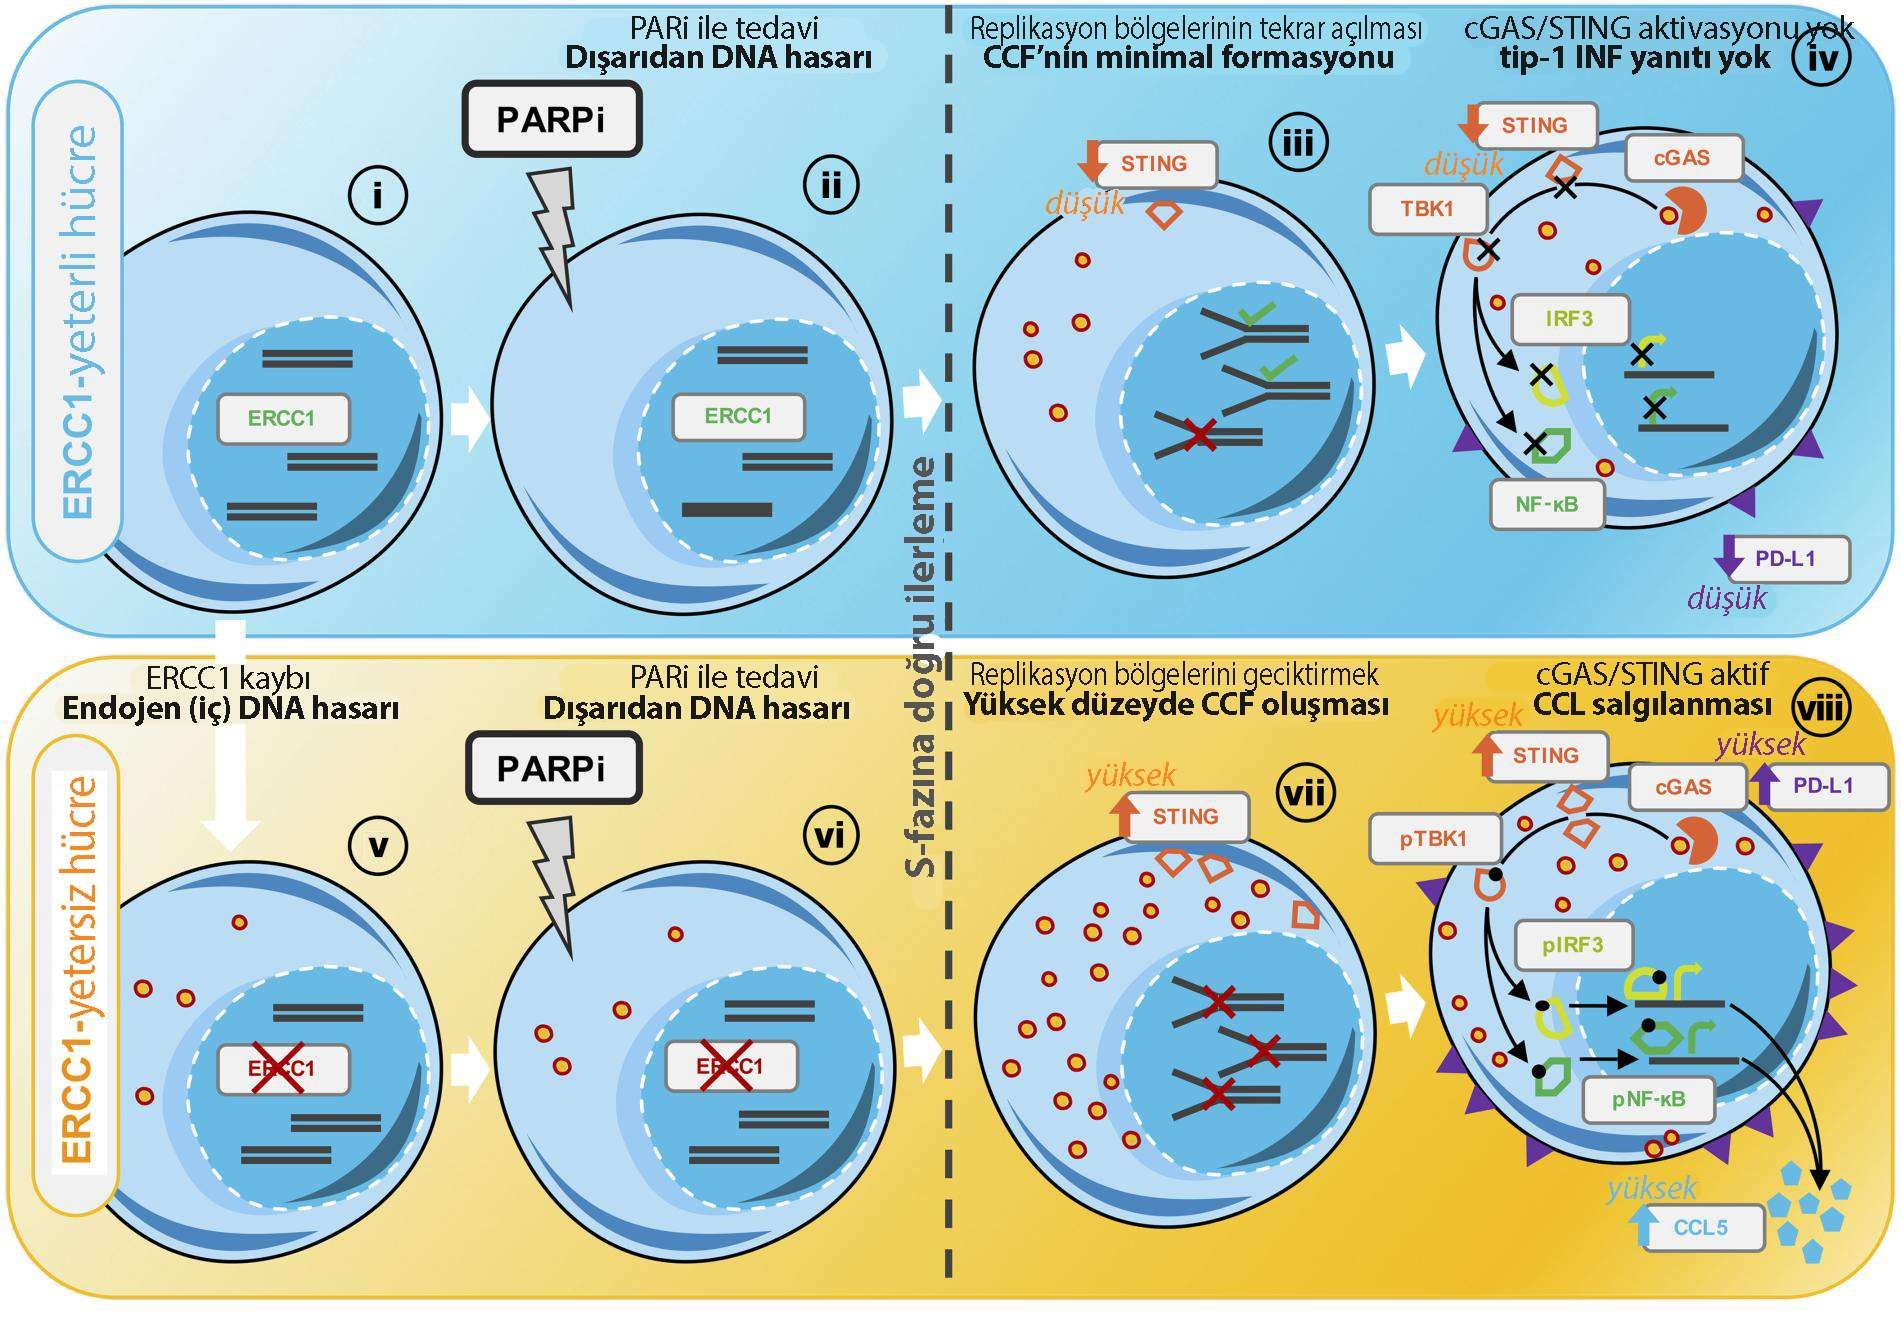 Model of ERCC1 defect dependent activation of cGAS STING following PARPi exposure